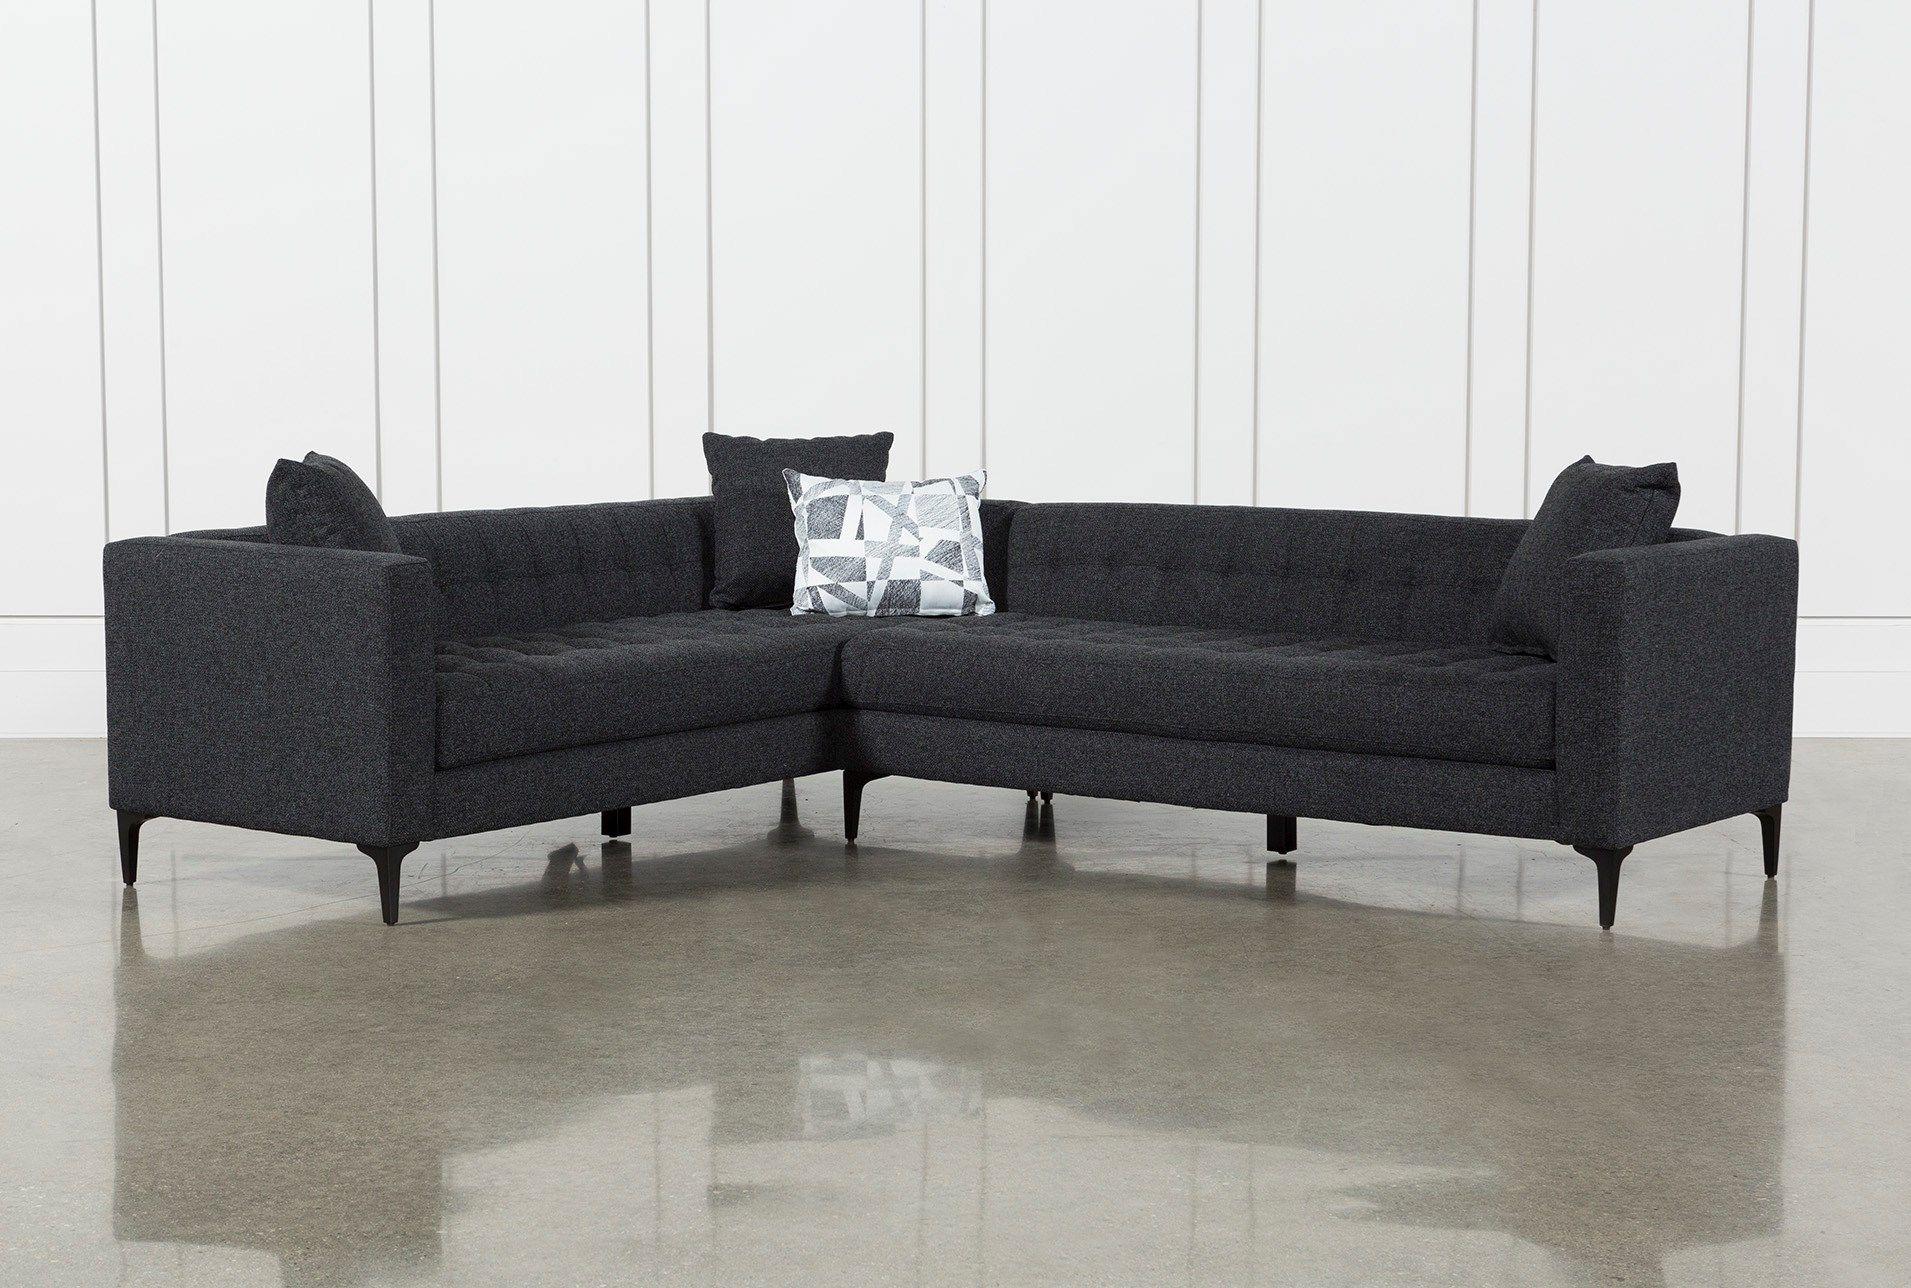 Anson 2 Piece Sectional In 2018 | Decorating | Pinterest | House Intended For Matteo Arm Sofa Chairs By Nate Berkus And Jeremiah Brent (Image 1 of 20)